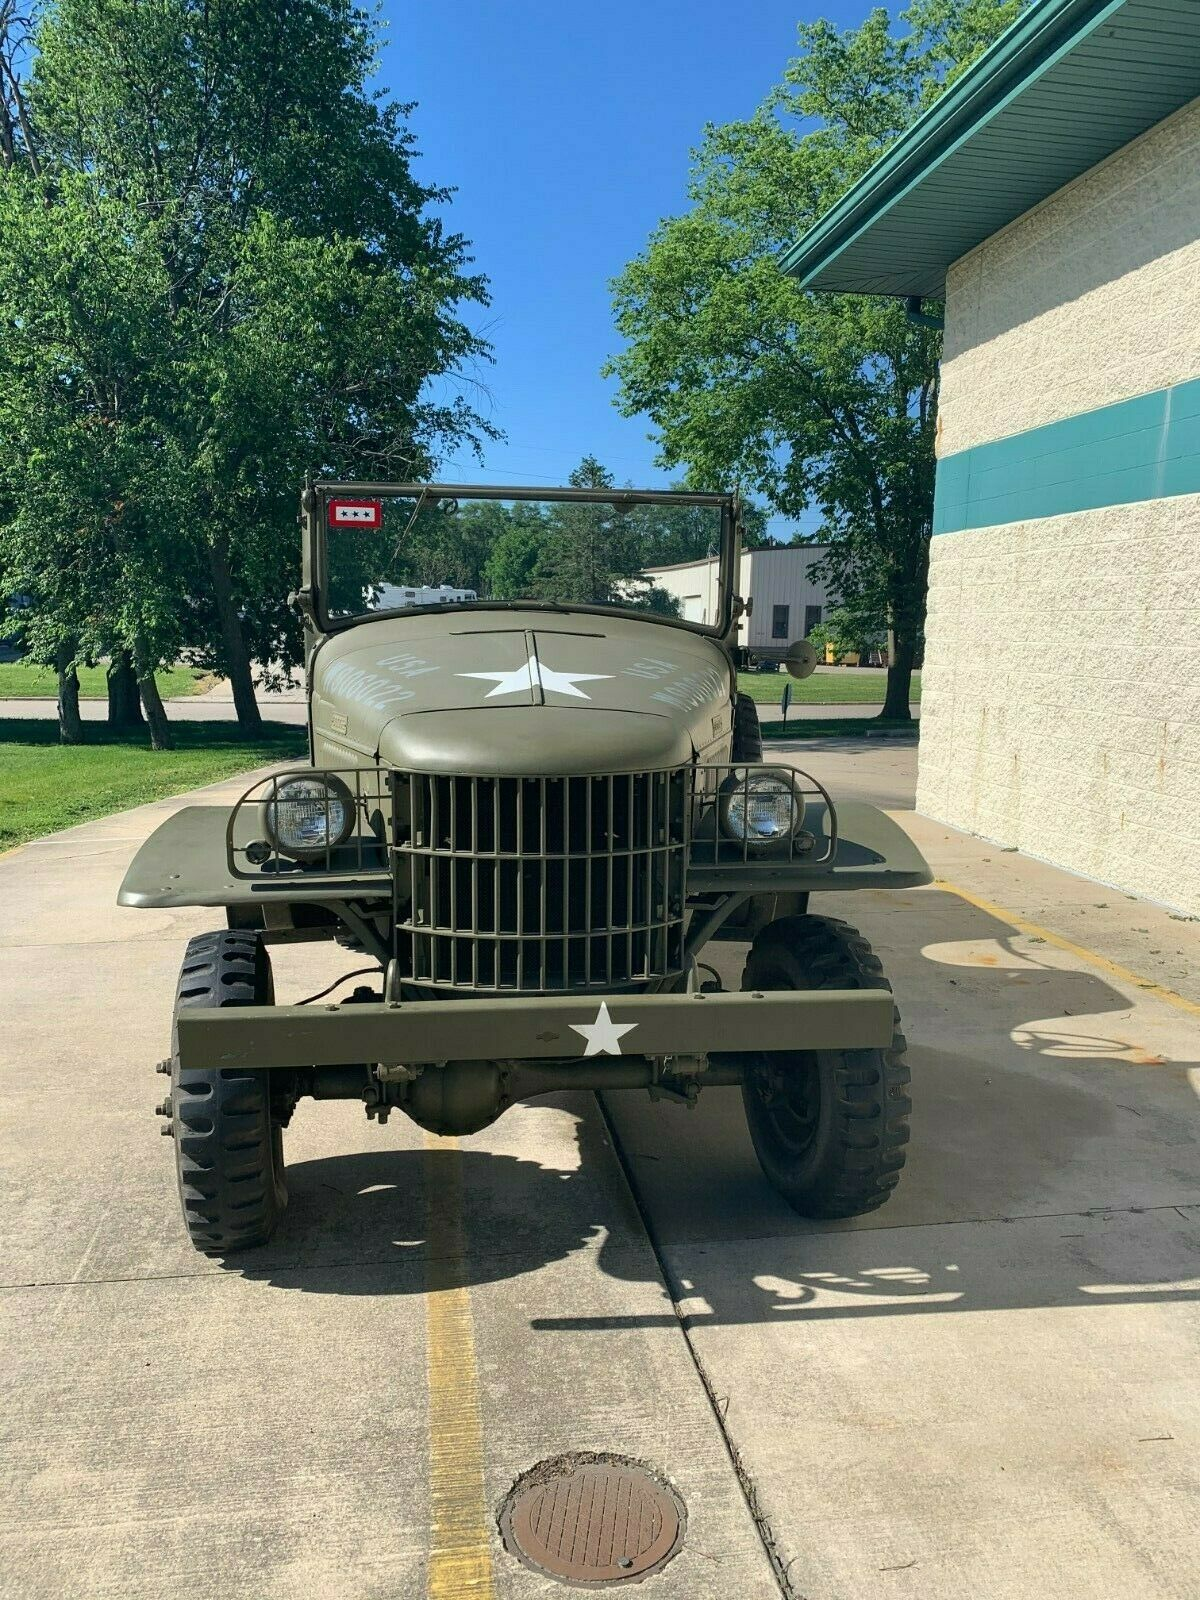 fully restored 1940 Dodge Power Wagon Command Car military